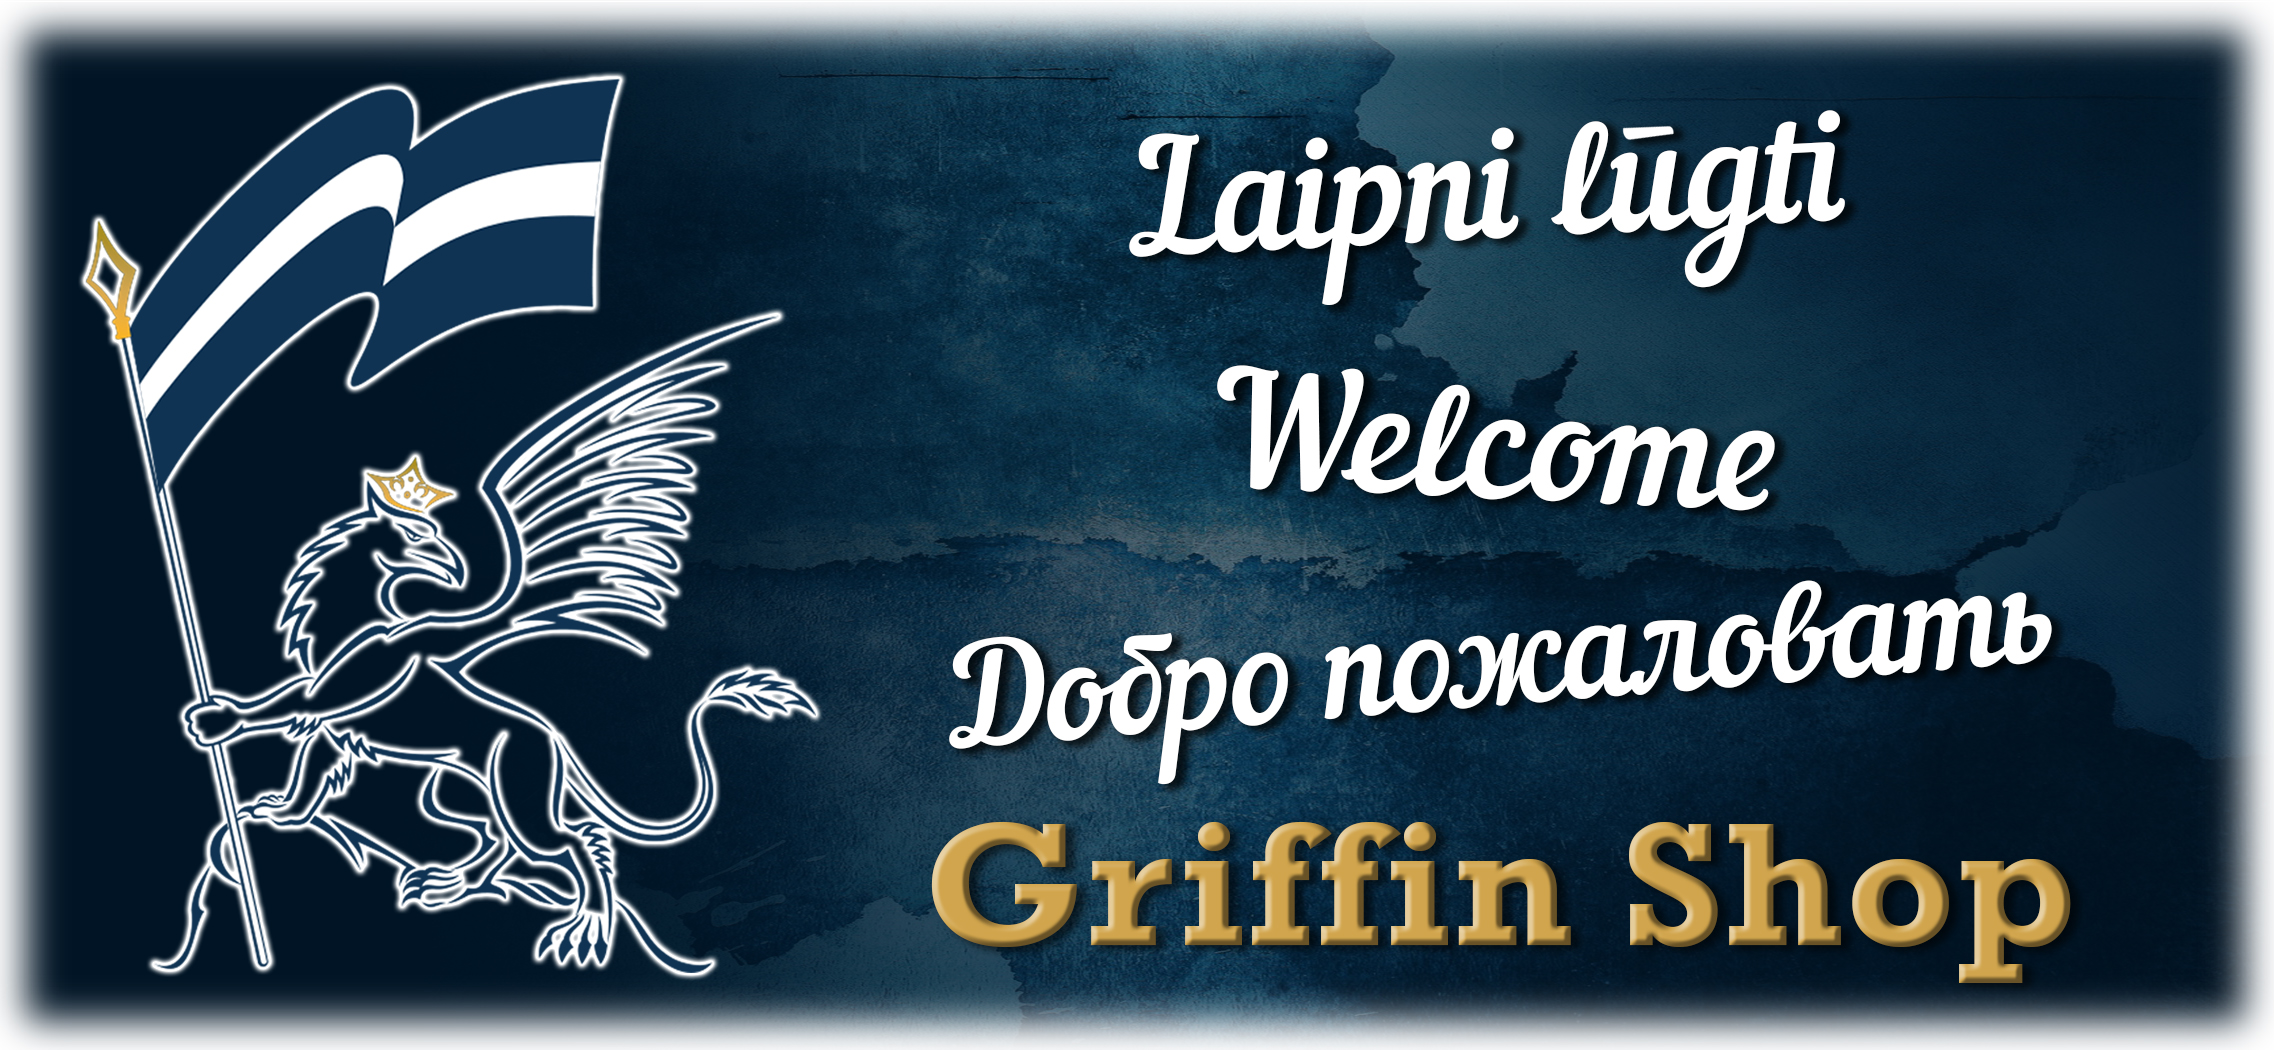 9476608GriffinShop_welcome